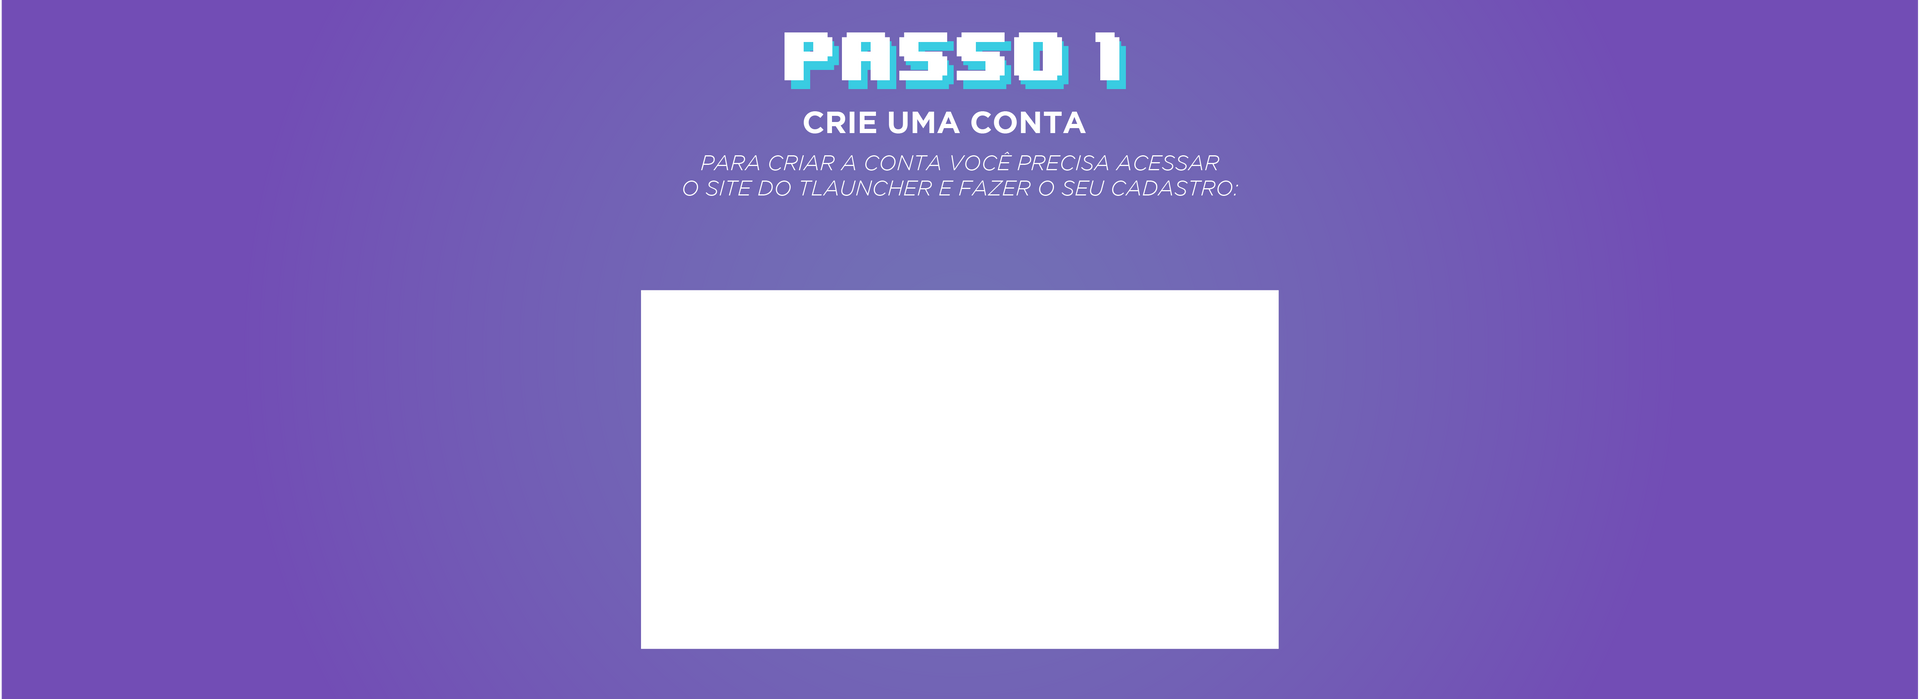 passo 1.png